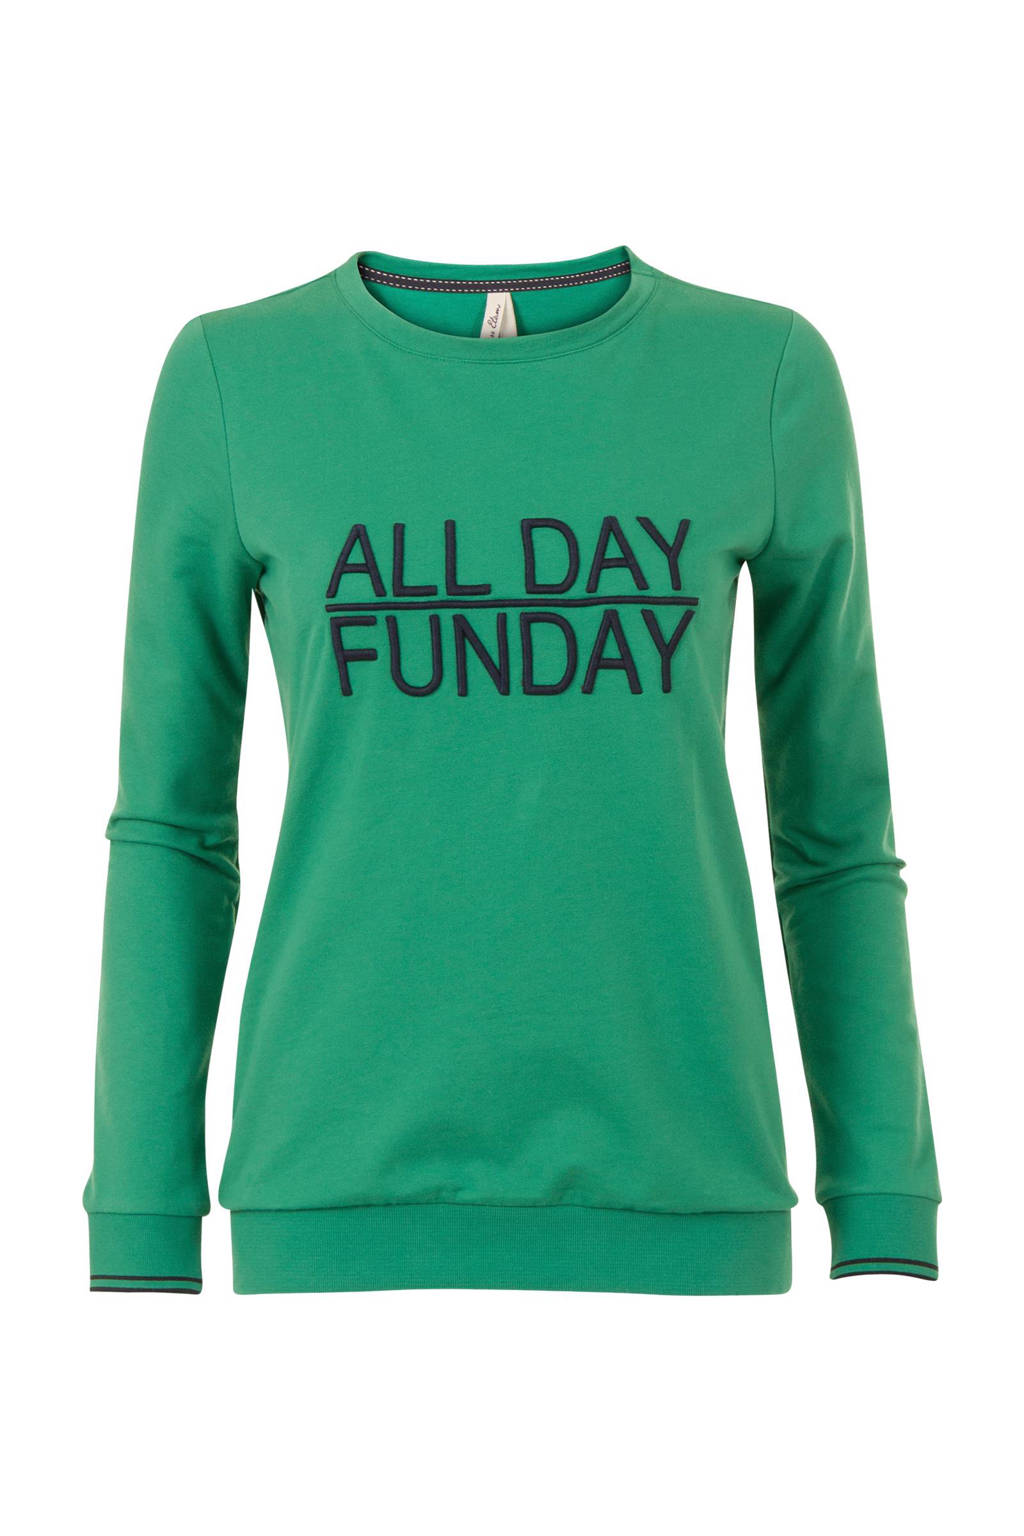 Miss Etam Regulier sweater, Groen